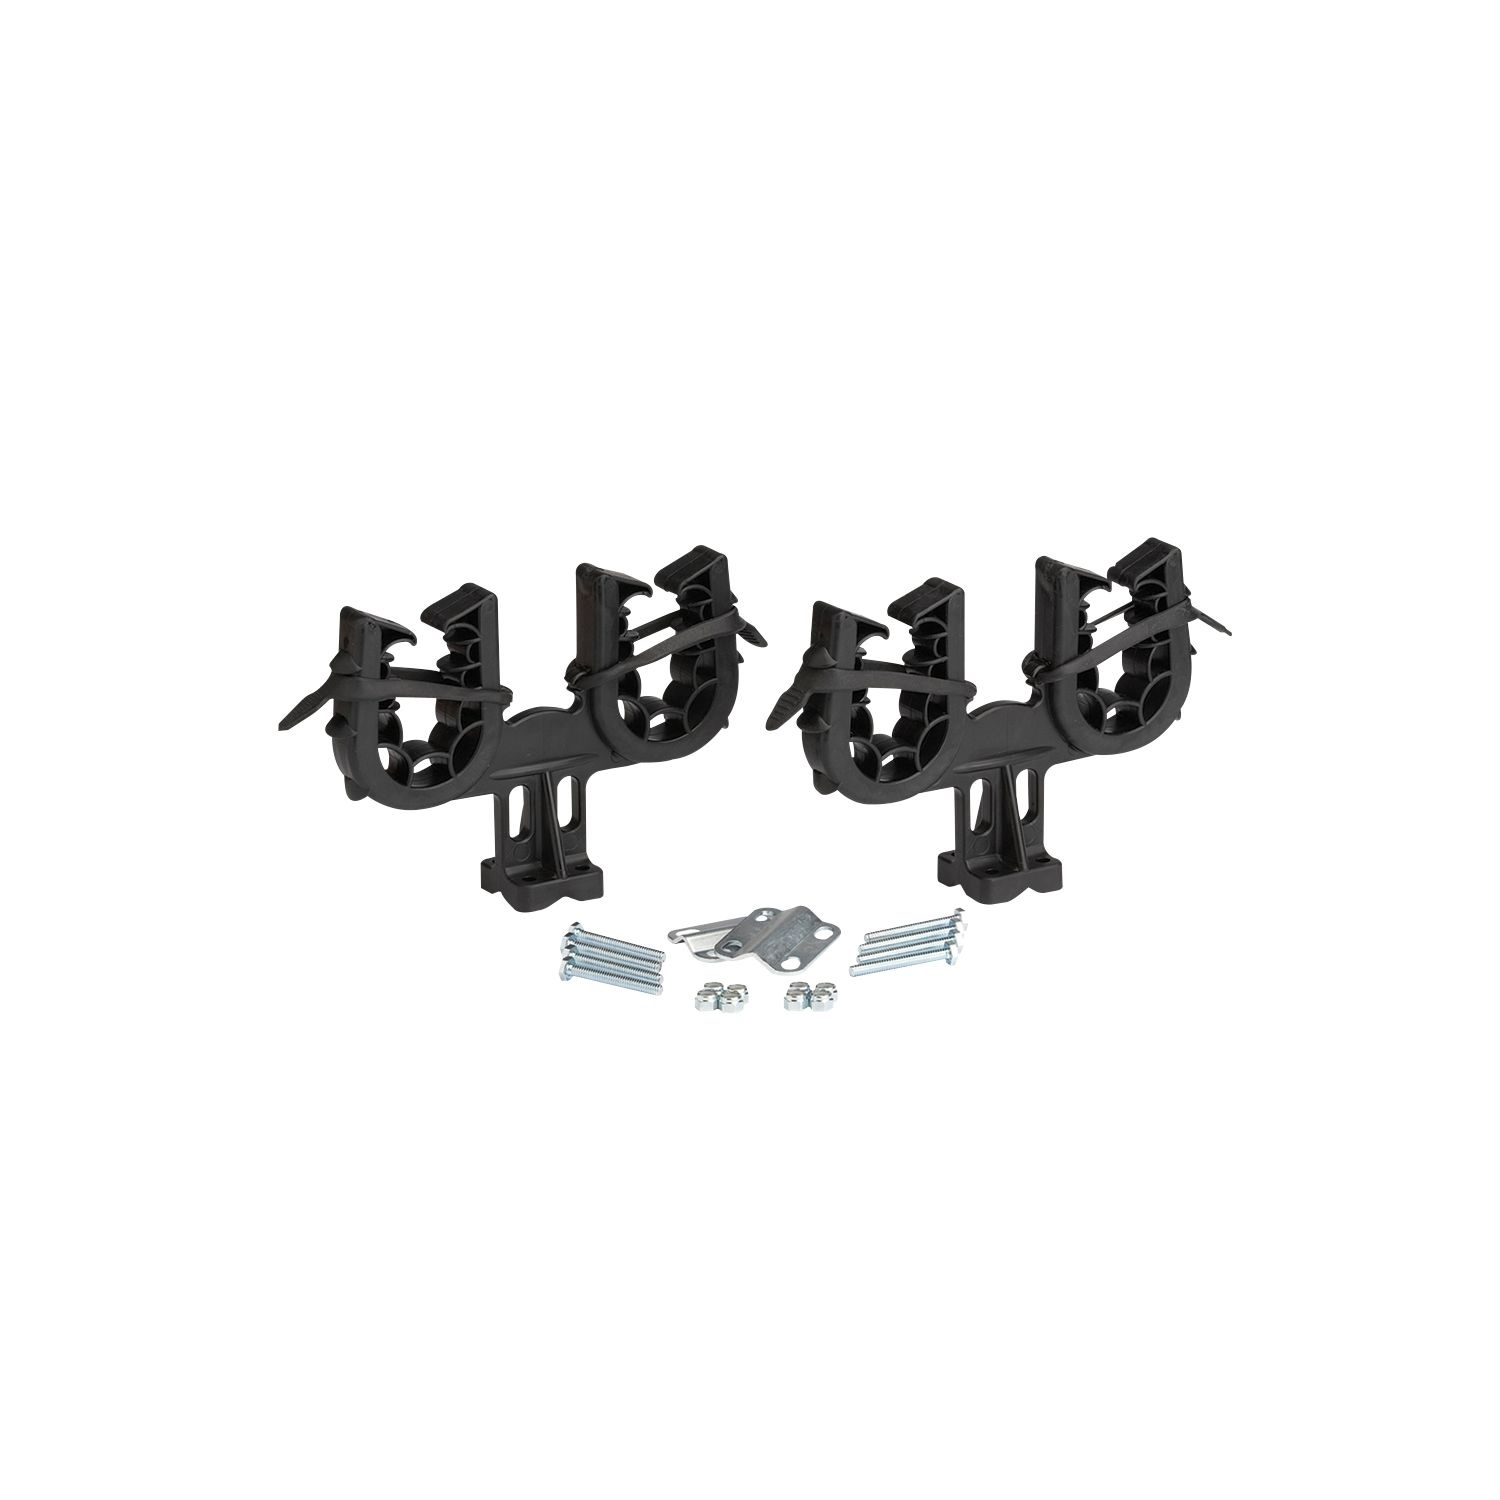 MadDog Gear Premier EZ-Mount Fin Grip Clamp